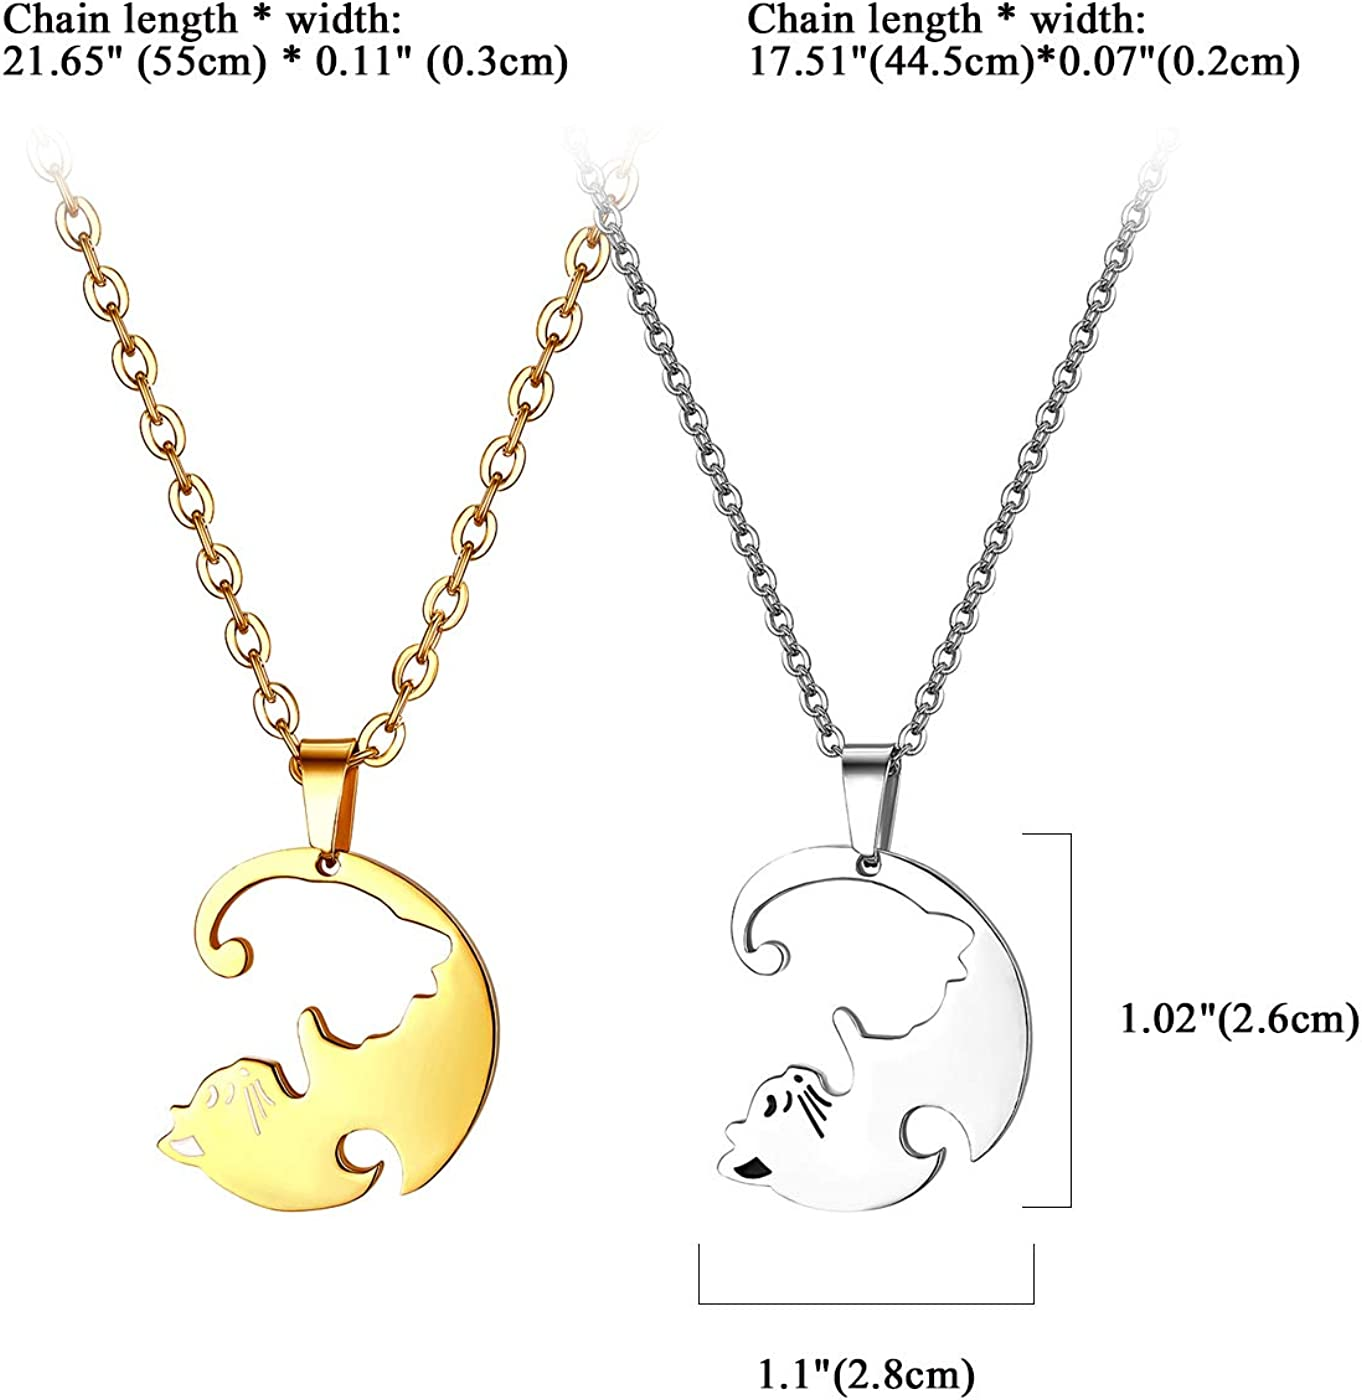 Cupimatch 2 Pcs Kitty Cat Pendant Couples Necklace Stainless Steel Matching Puzzle Love Cat Jewelry Set for Lovers Friends,22 18 Chain